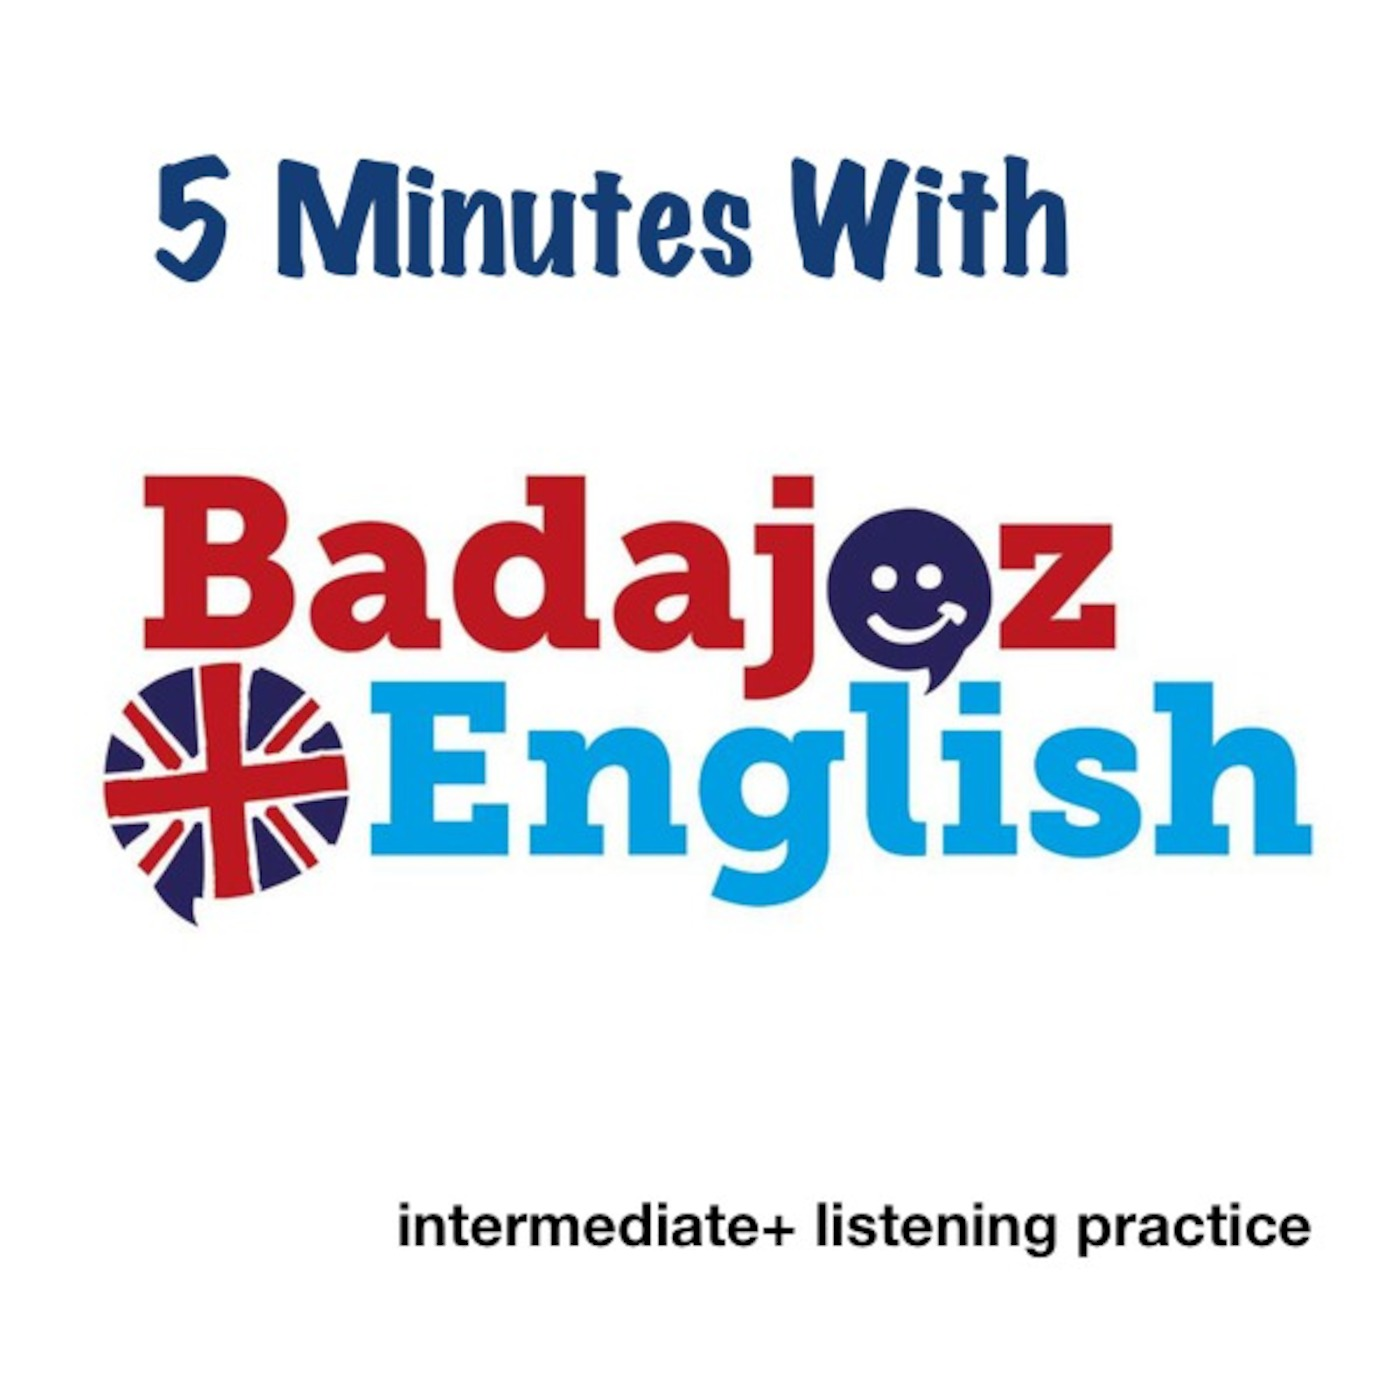 5 Minutes With Badajoz English